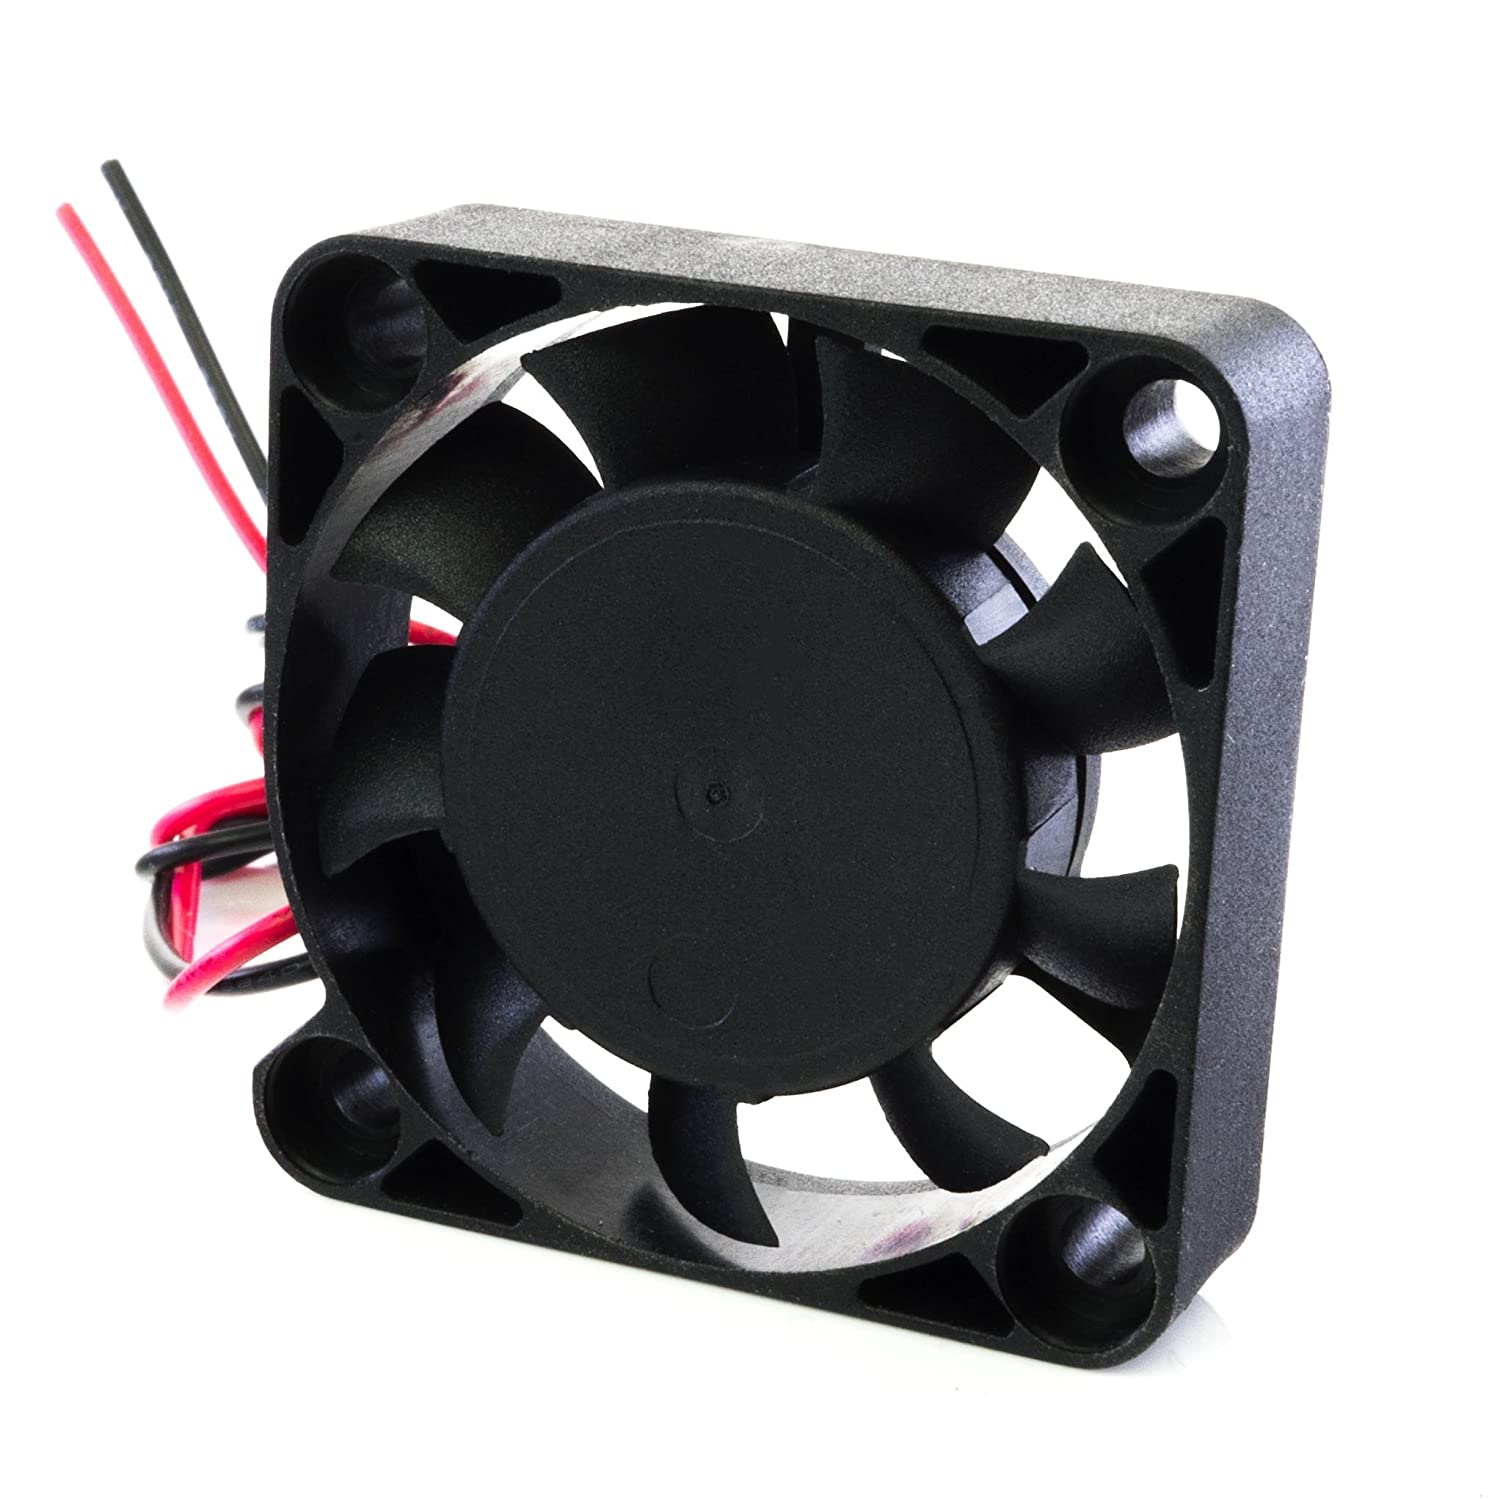 Maker Girl USA DC Case Fan Brushless 40mm x 40mm x 10mm 12V Quiet Output 4010 DC4010S12L